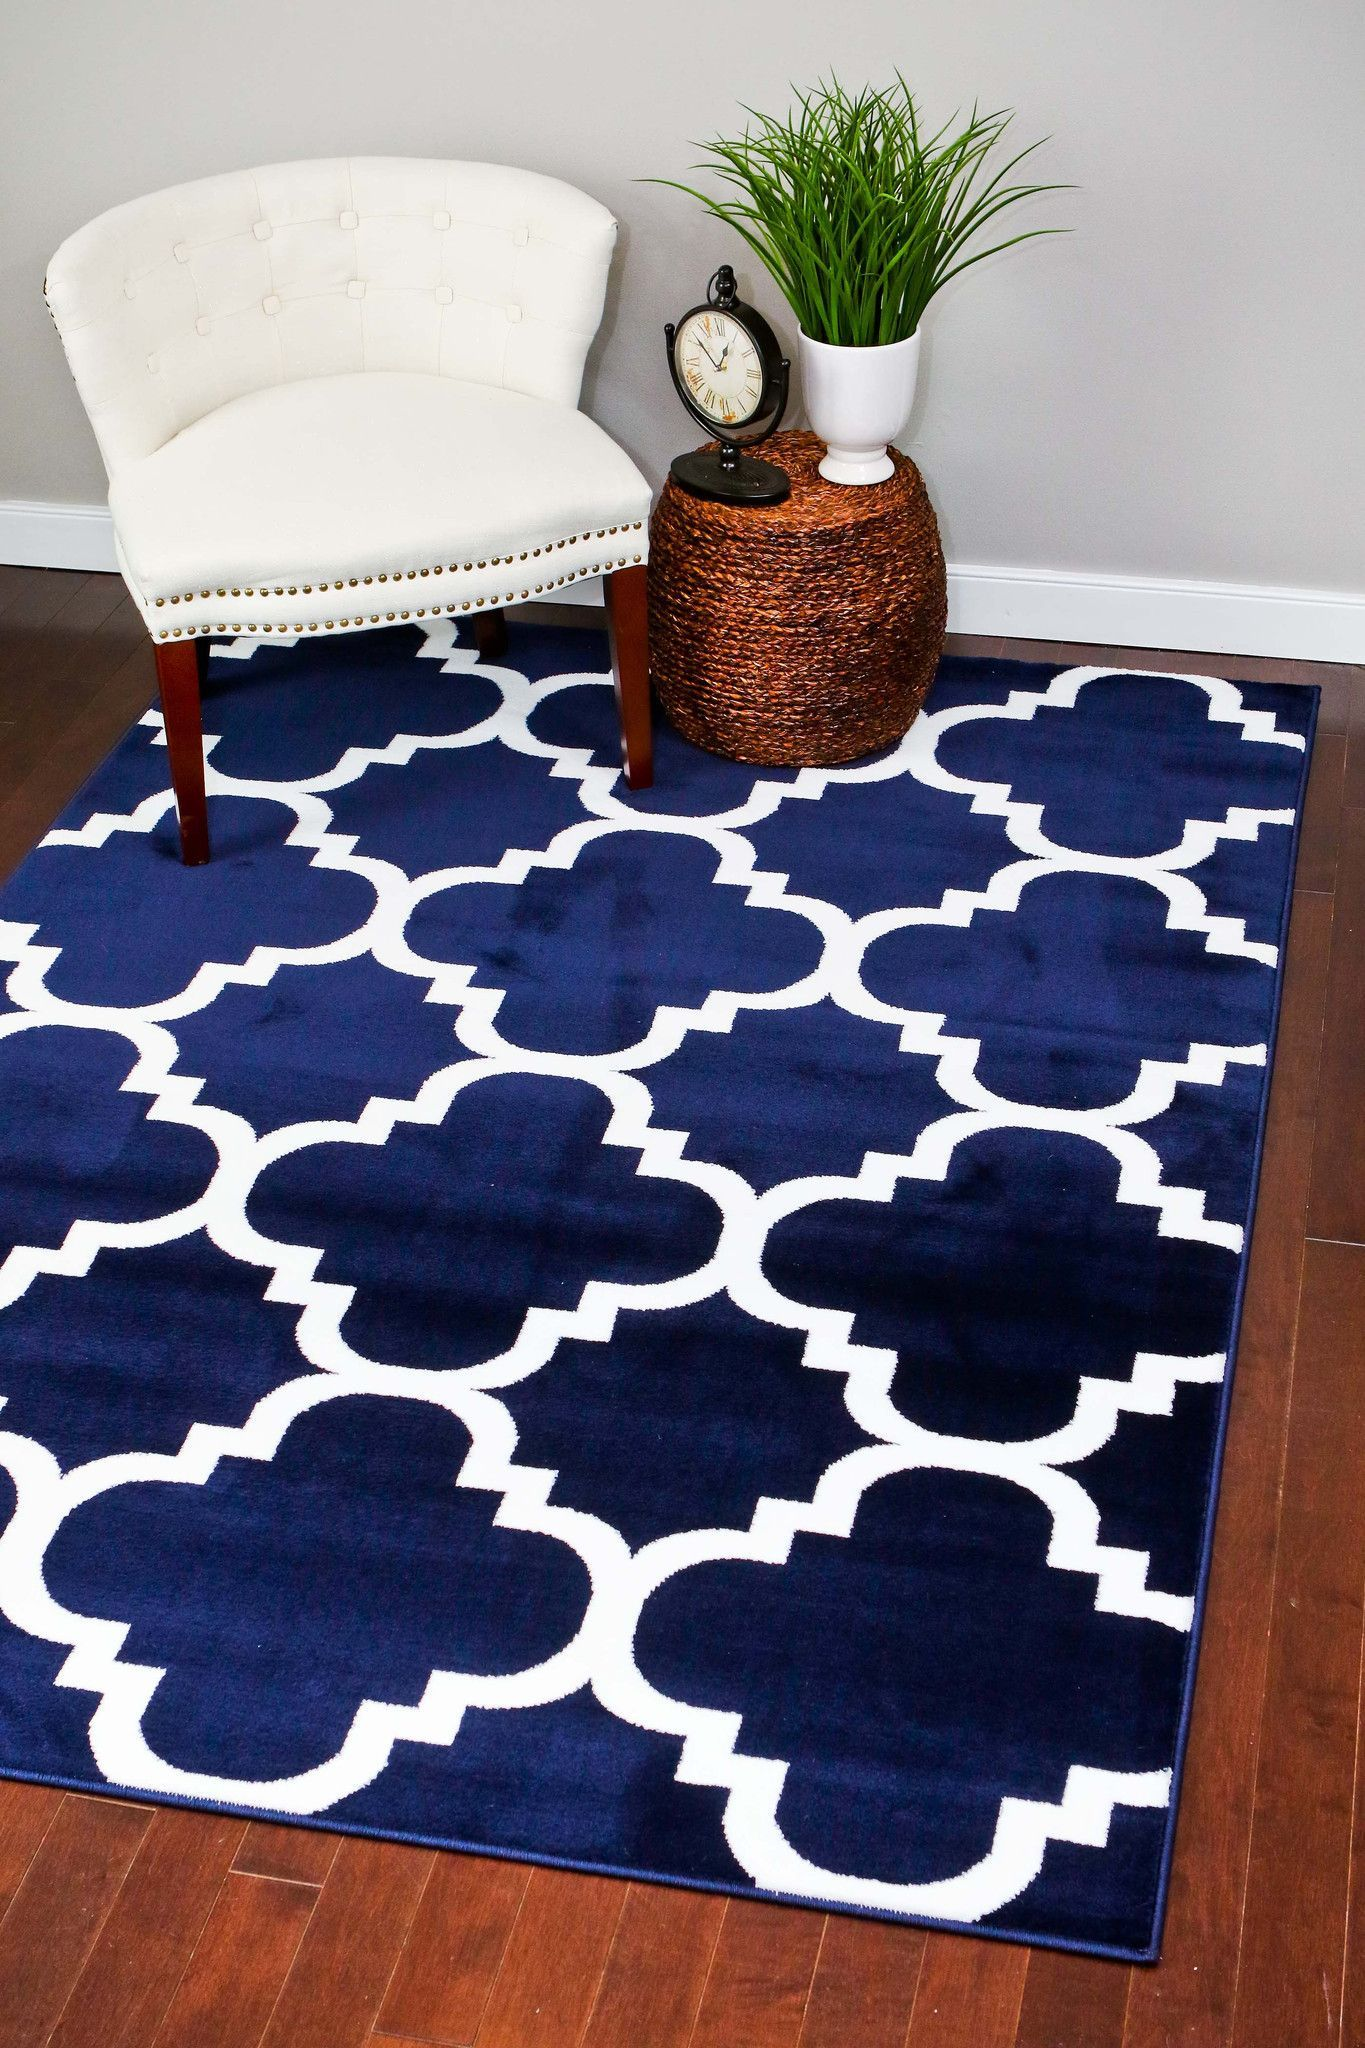 ideas grey blue remodel navy rug best awesome rugs album pinterest on area amazing room laundry